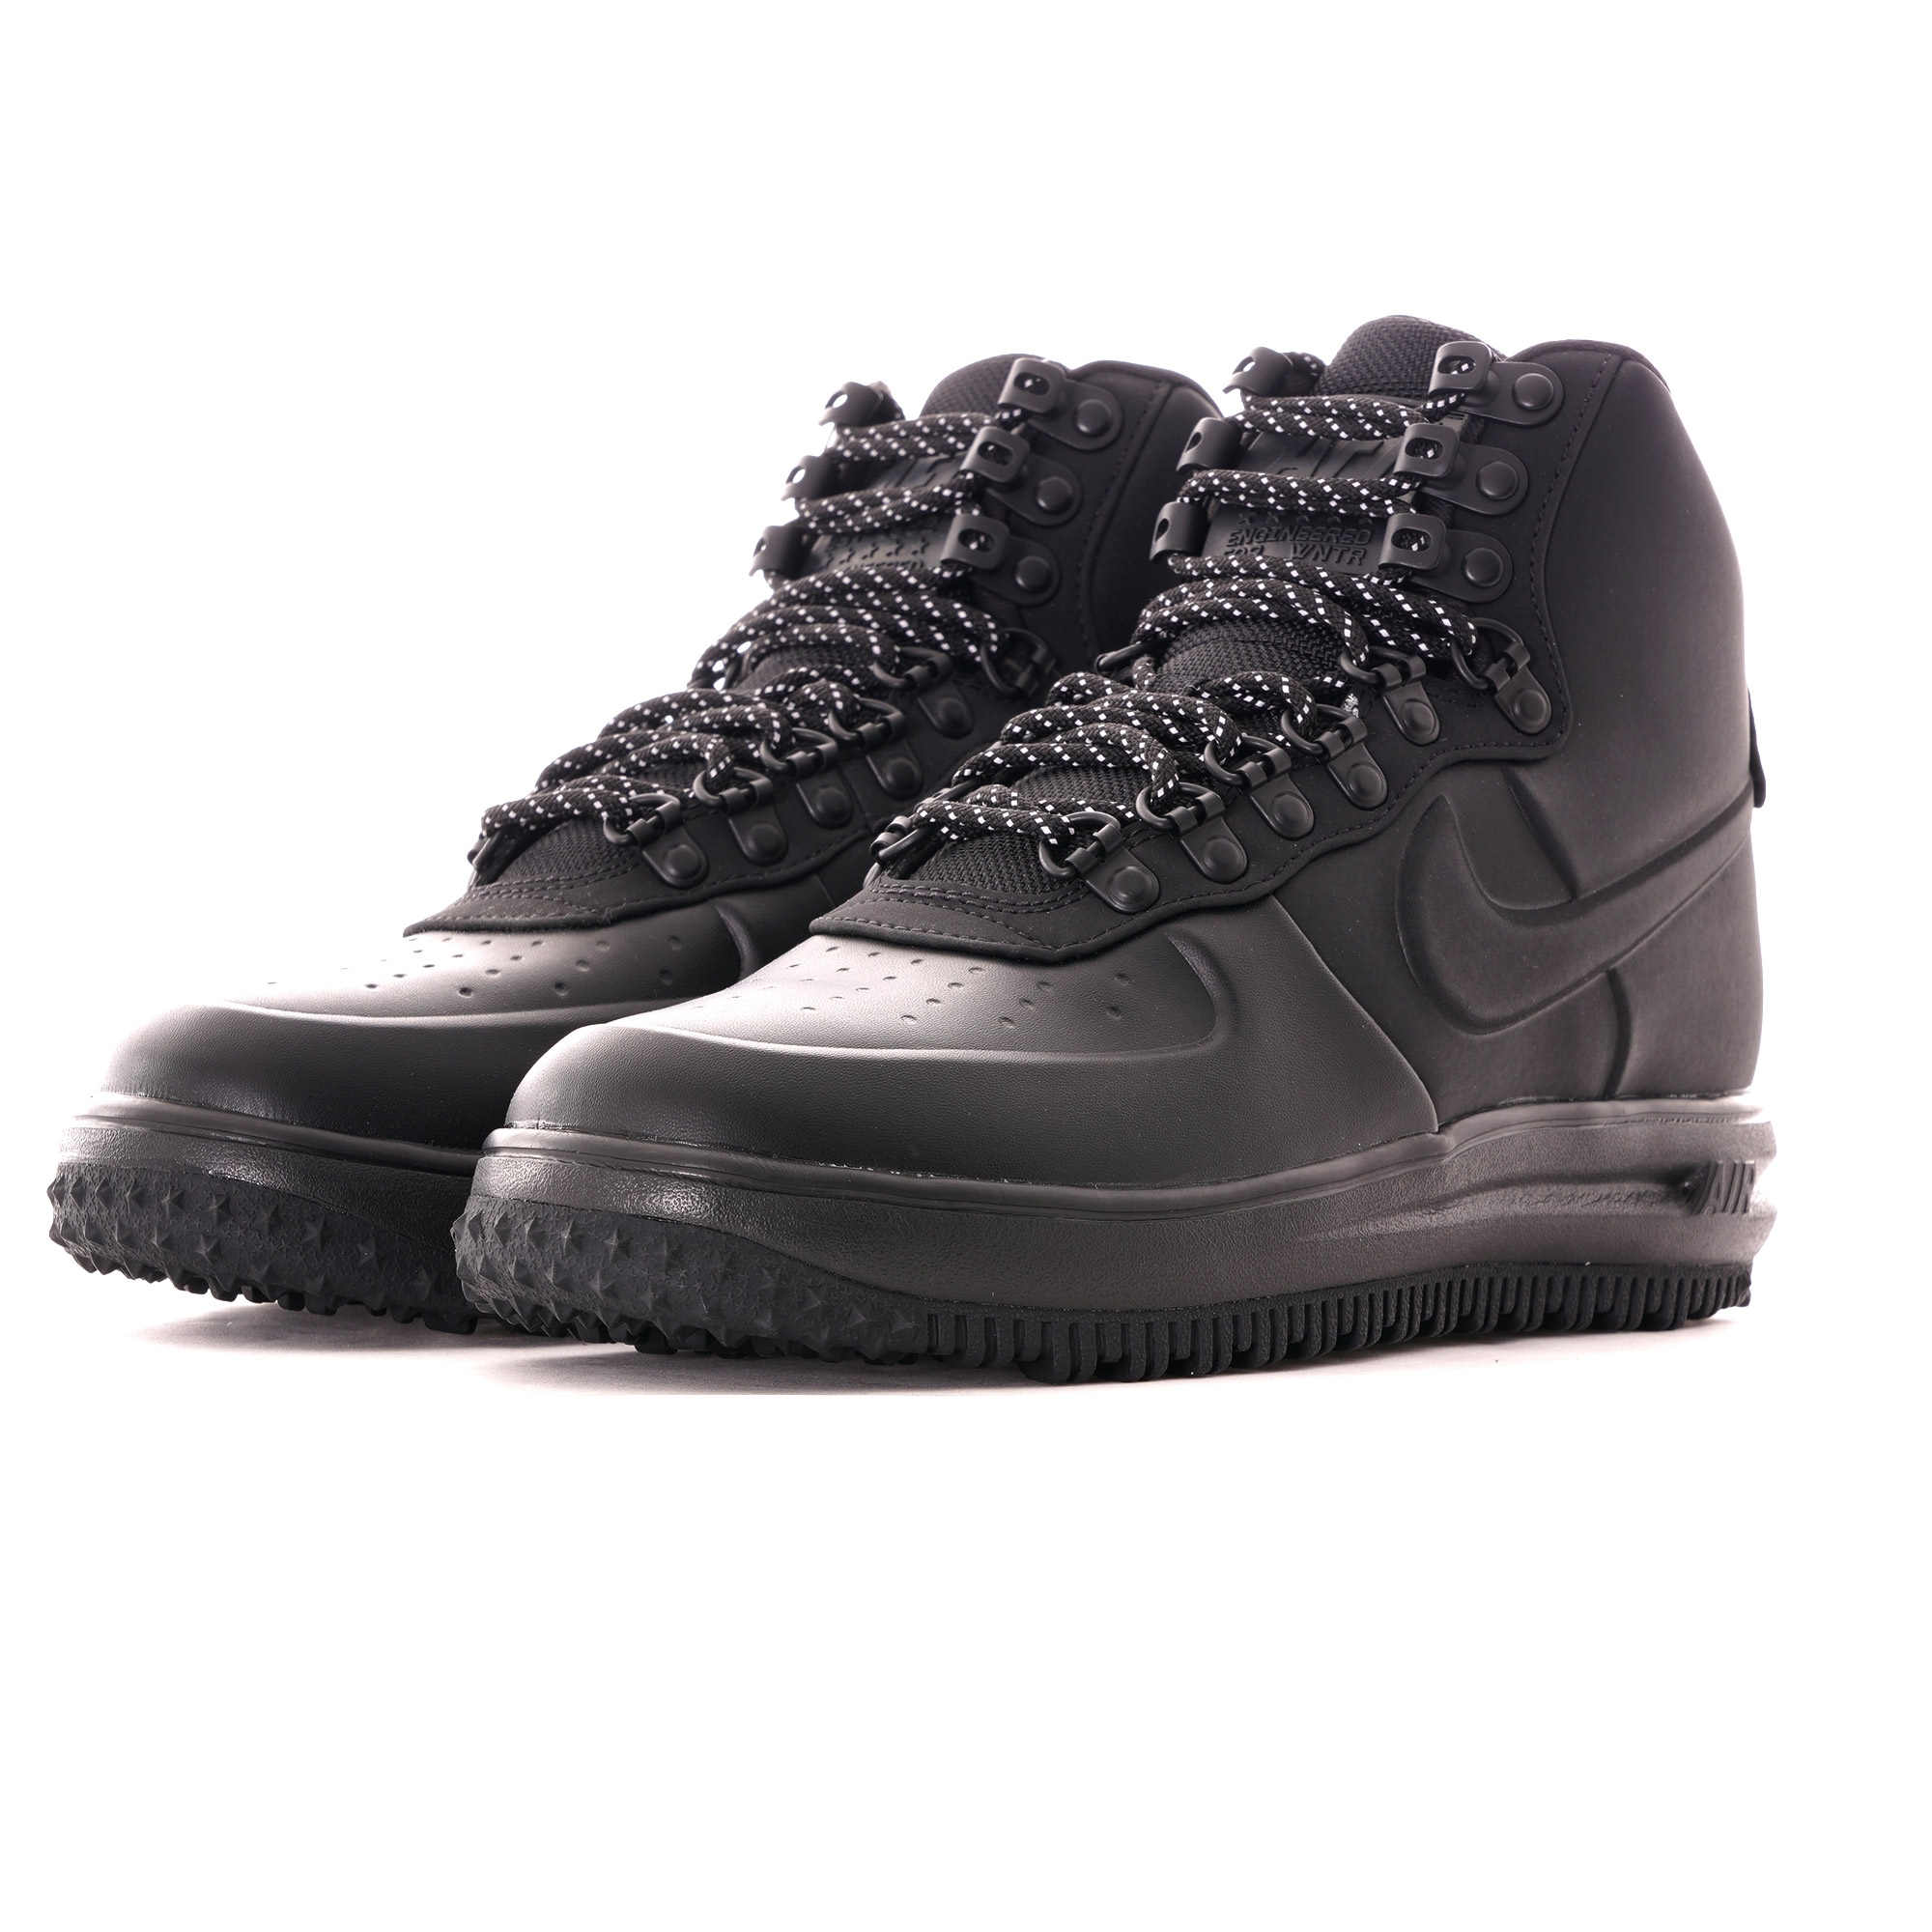 Lunar Force 1 Duckboot '18 BlackBlackBlack